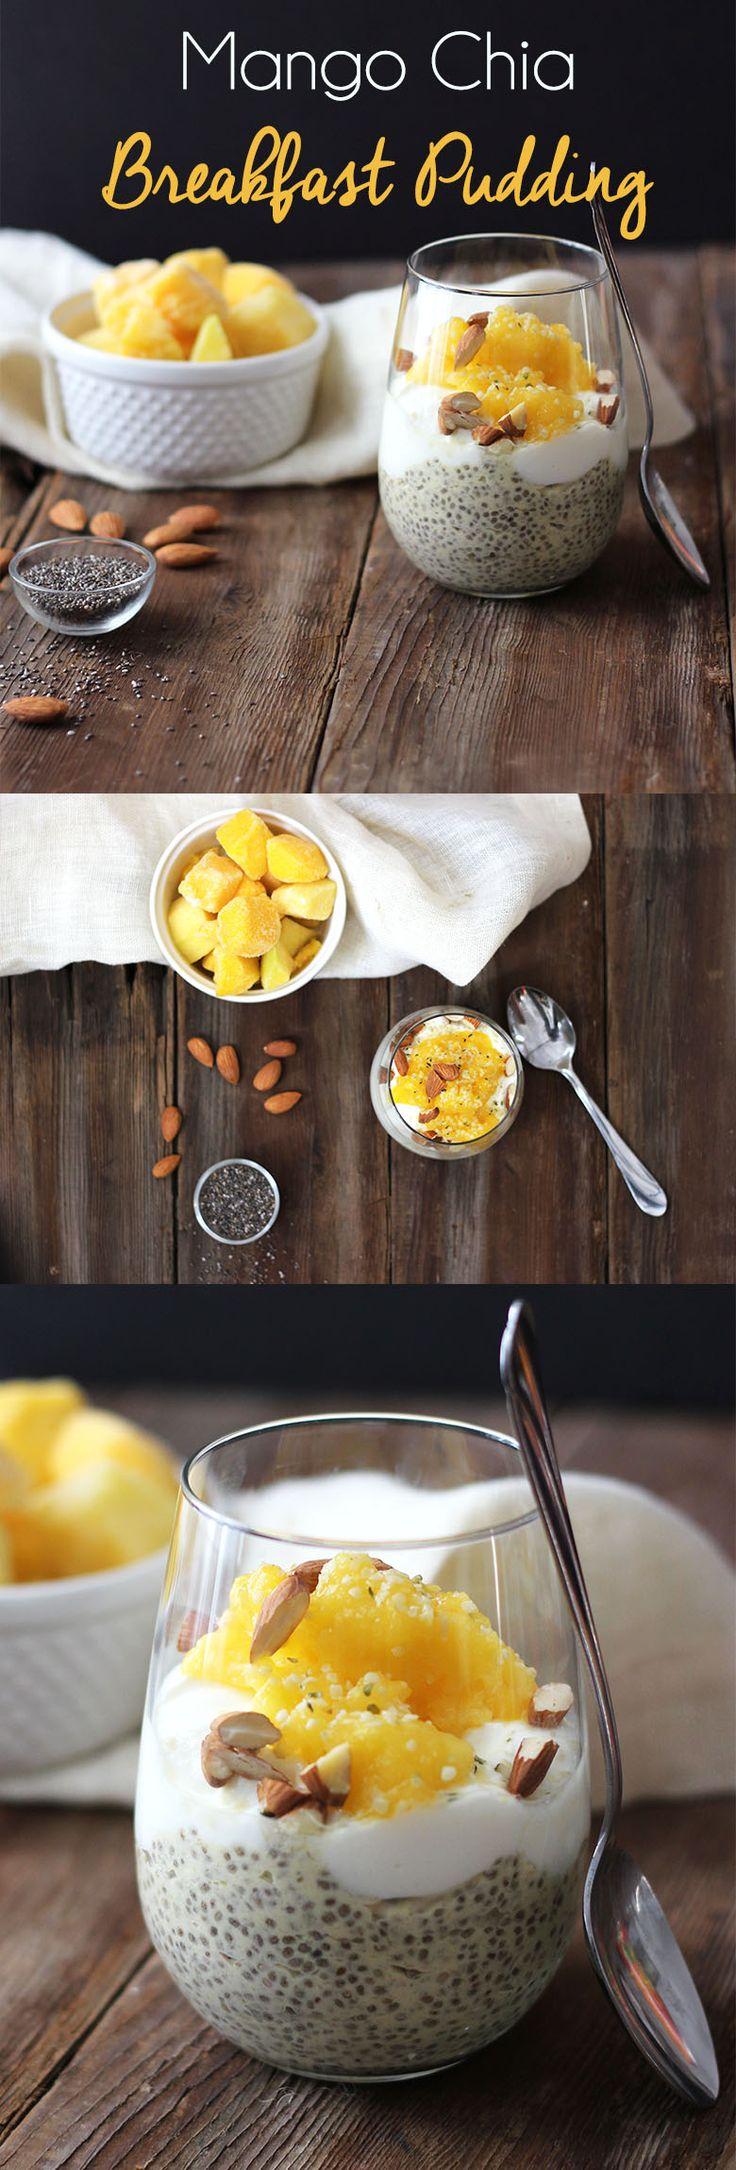 Mango Chia Breakfast Pudding #Healthy #Vegan - Perfect for busy mornings!